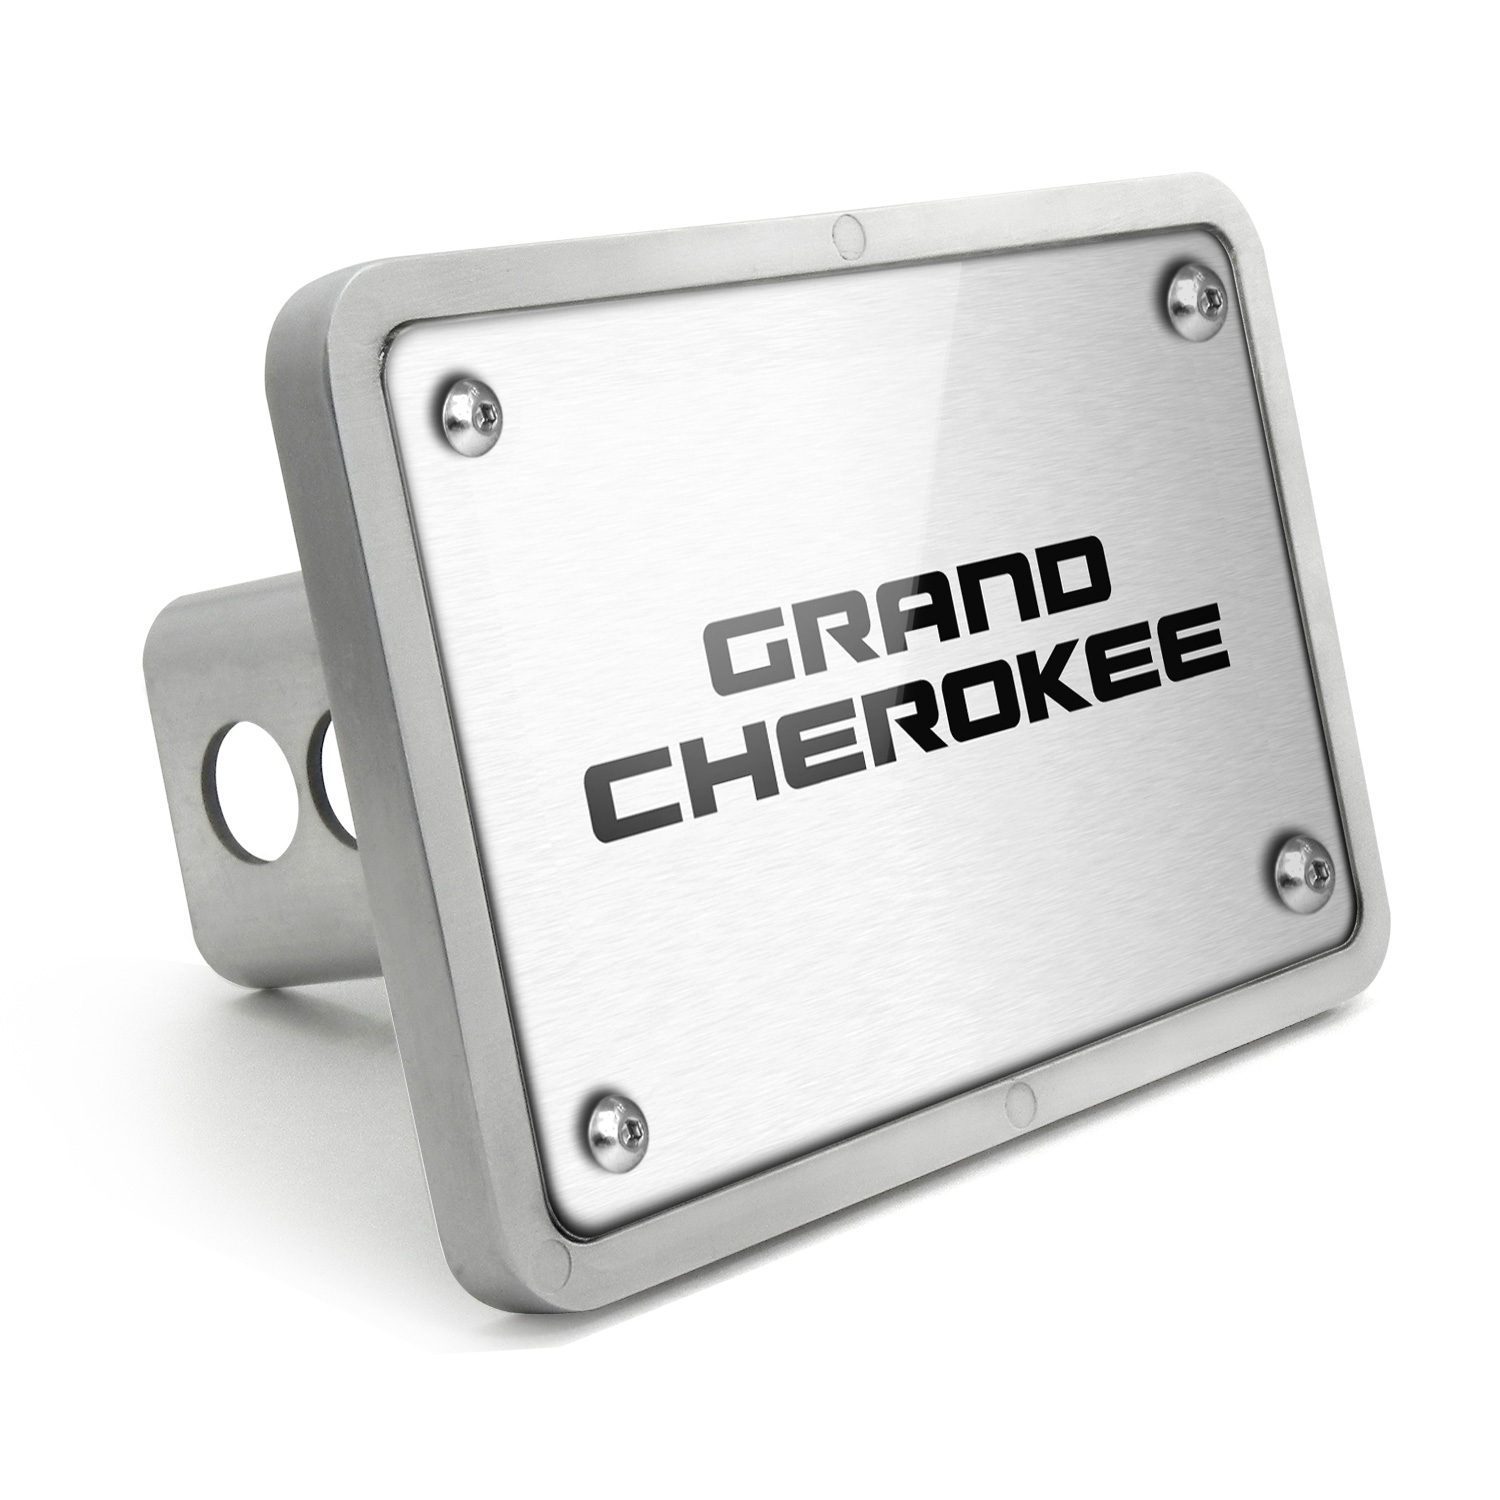 Jeep Grand Cherokee UV Graphic Brushed Silver Billet Aluminum 2 inch Tow Hitch Cover